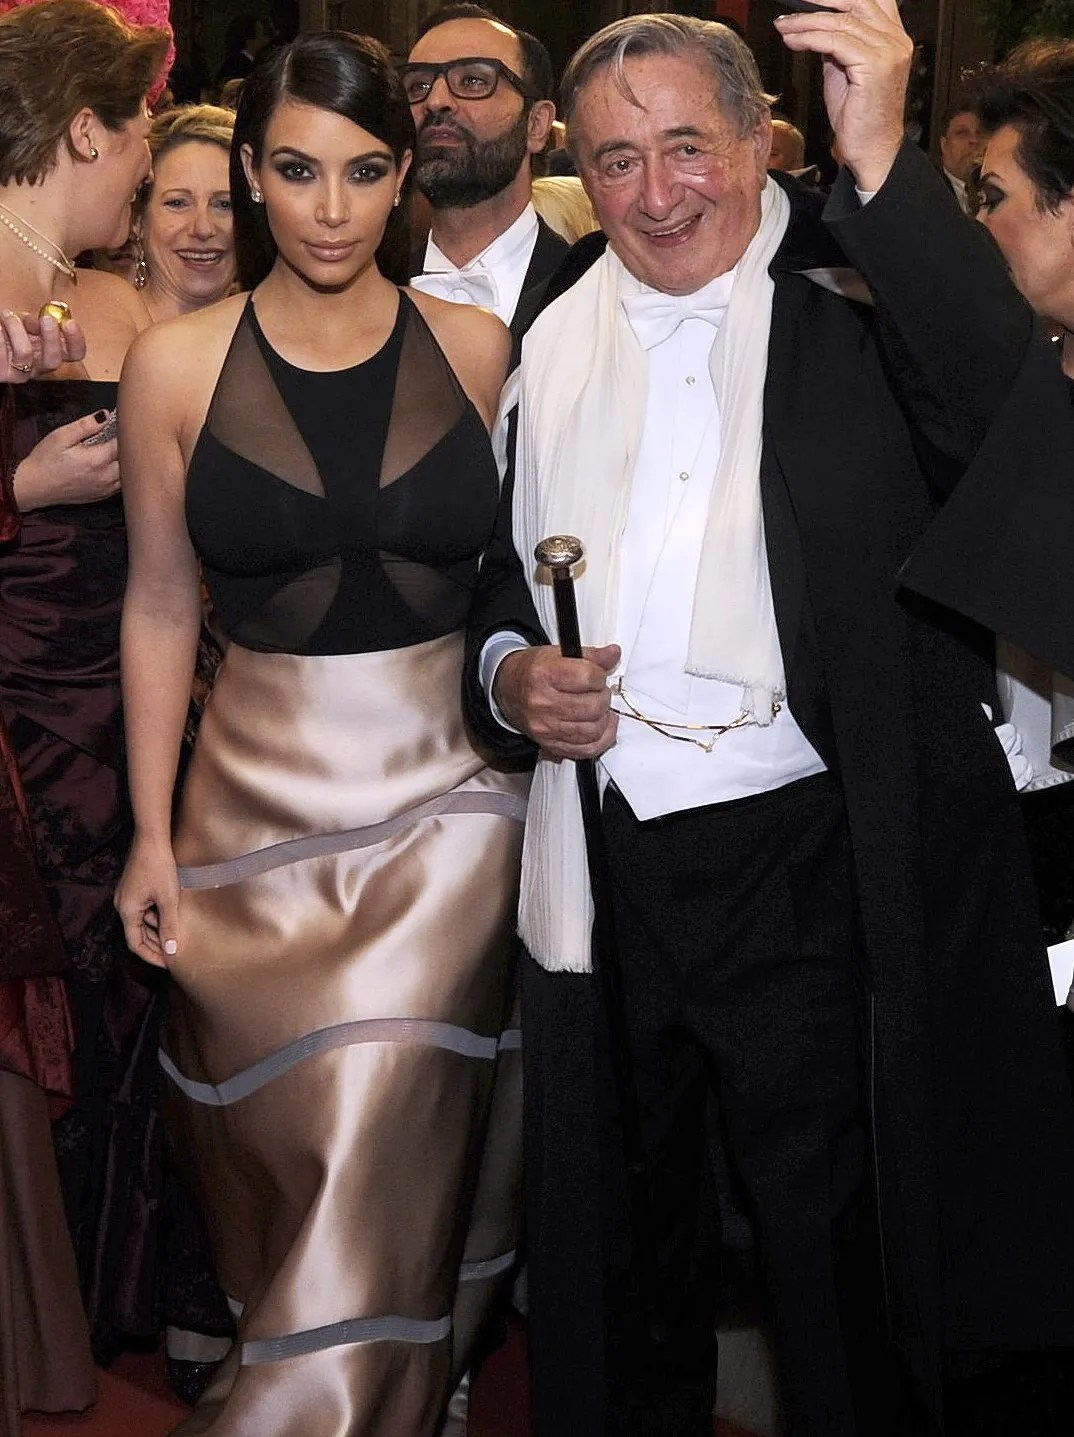 Kardashian and her host, Austrian businessman Richard Lugner arrive for the Vienna Opera Ball in Vienna, Austria on Feb. 27, 2014. At the event, she was accosted by a man in black-face.